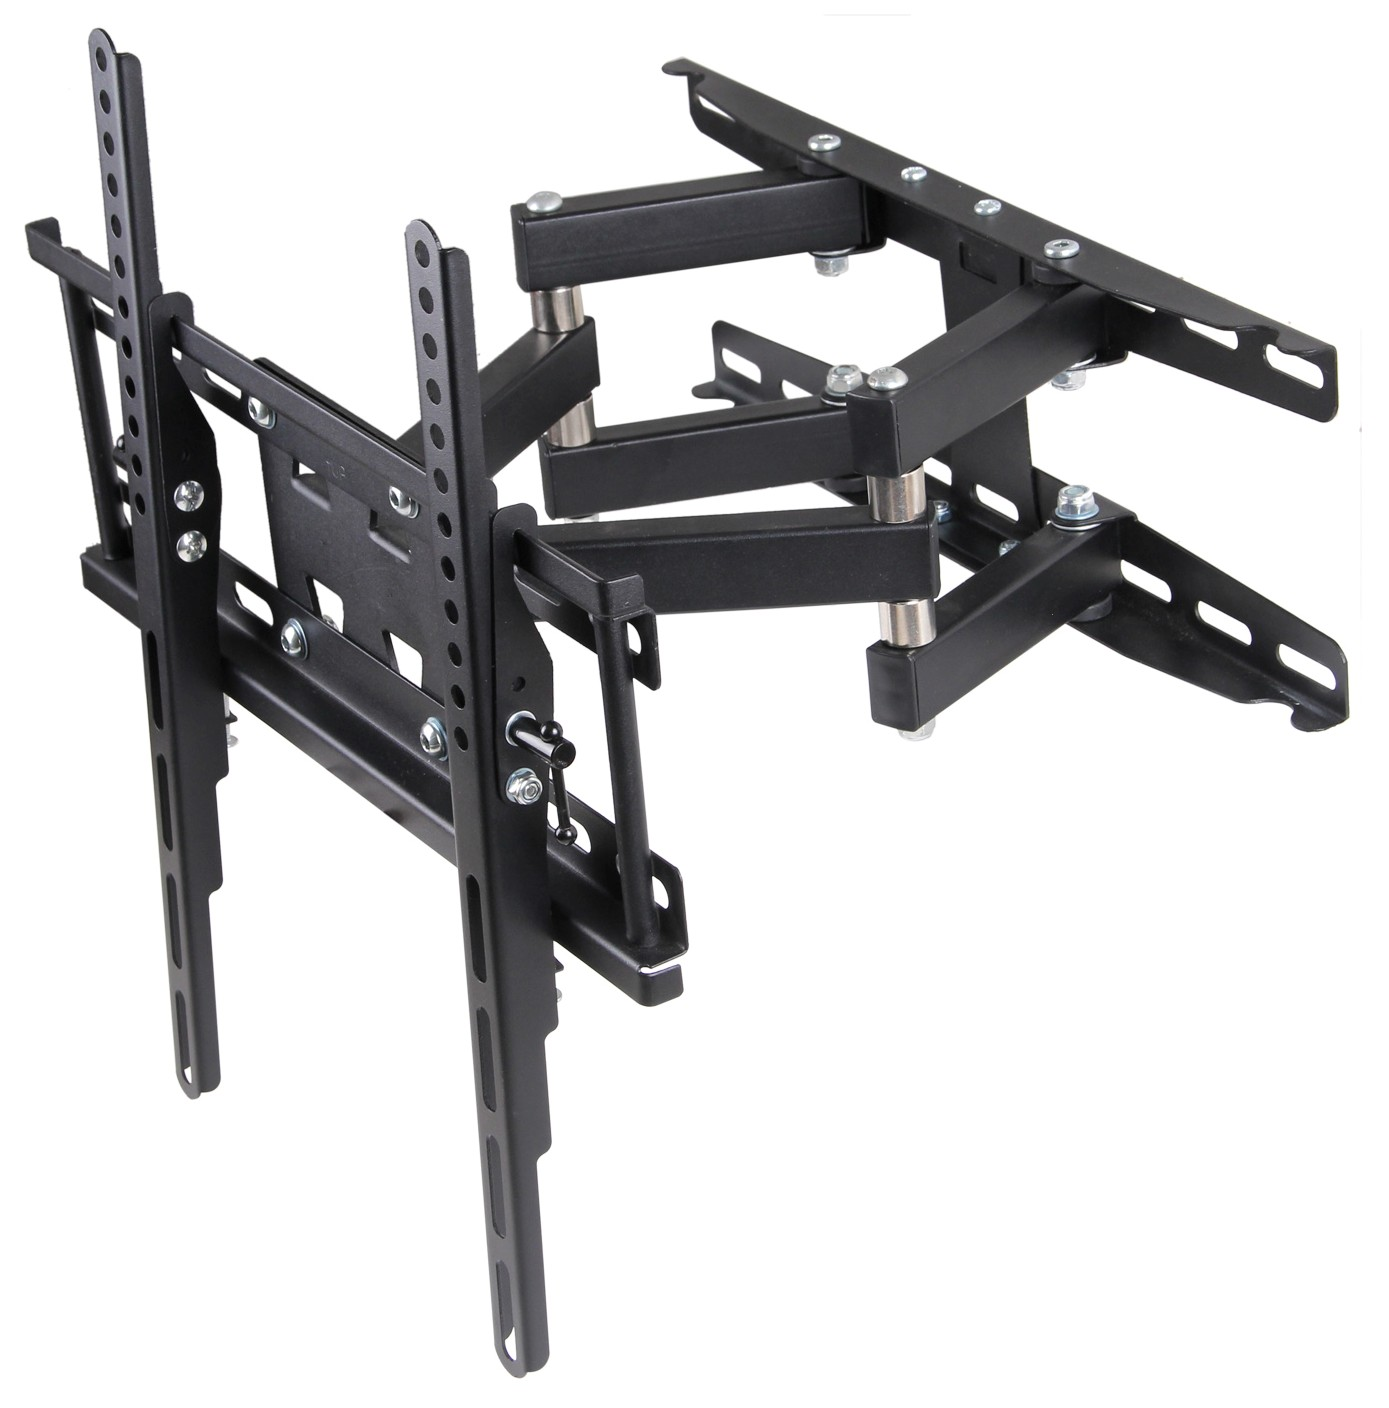 "Husky Mount Full Motion TV Wall Mount - Fits most LED LCD HDTVs 32"" - 55"" up to 66 lb"